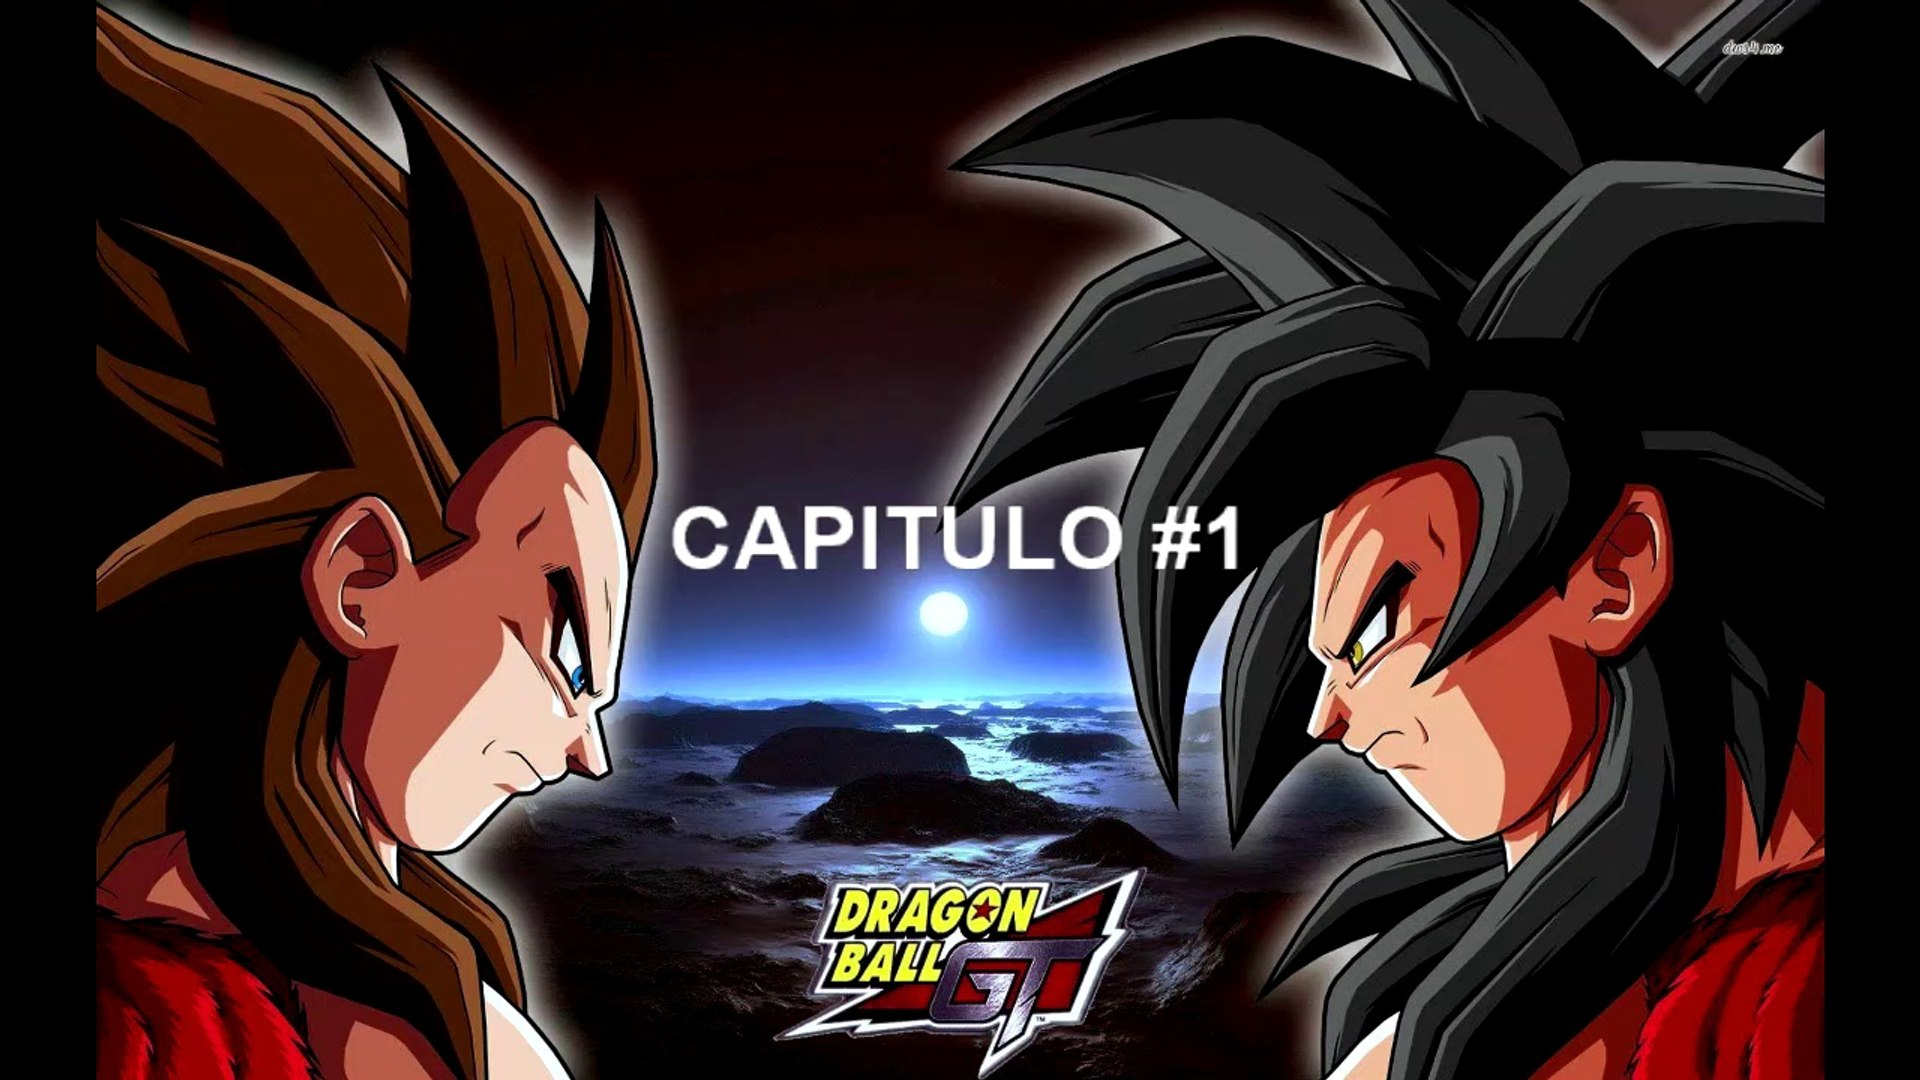 Dragon Ball Gt Capitulo 1 Vídeo Dailymotion